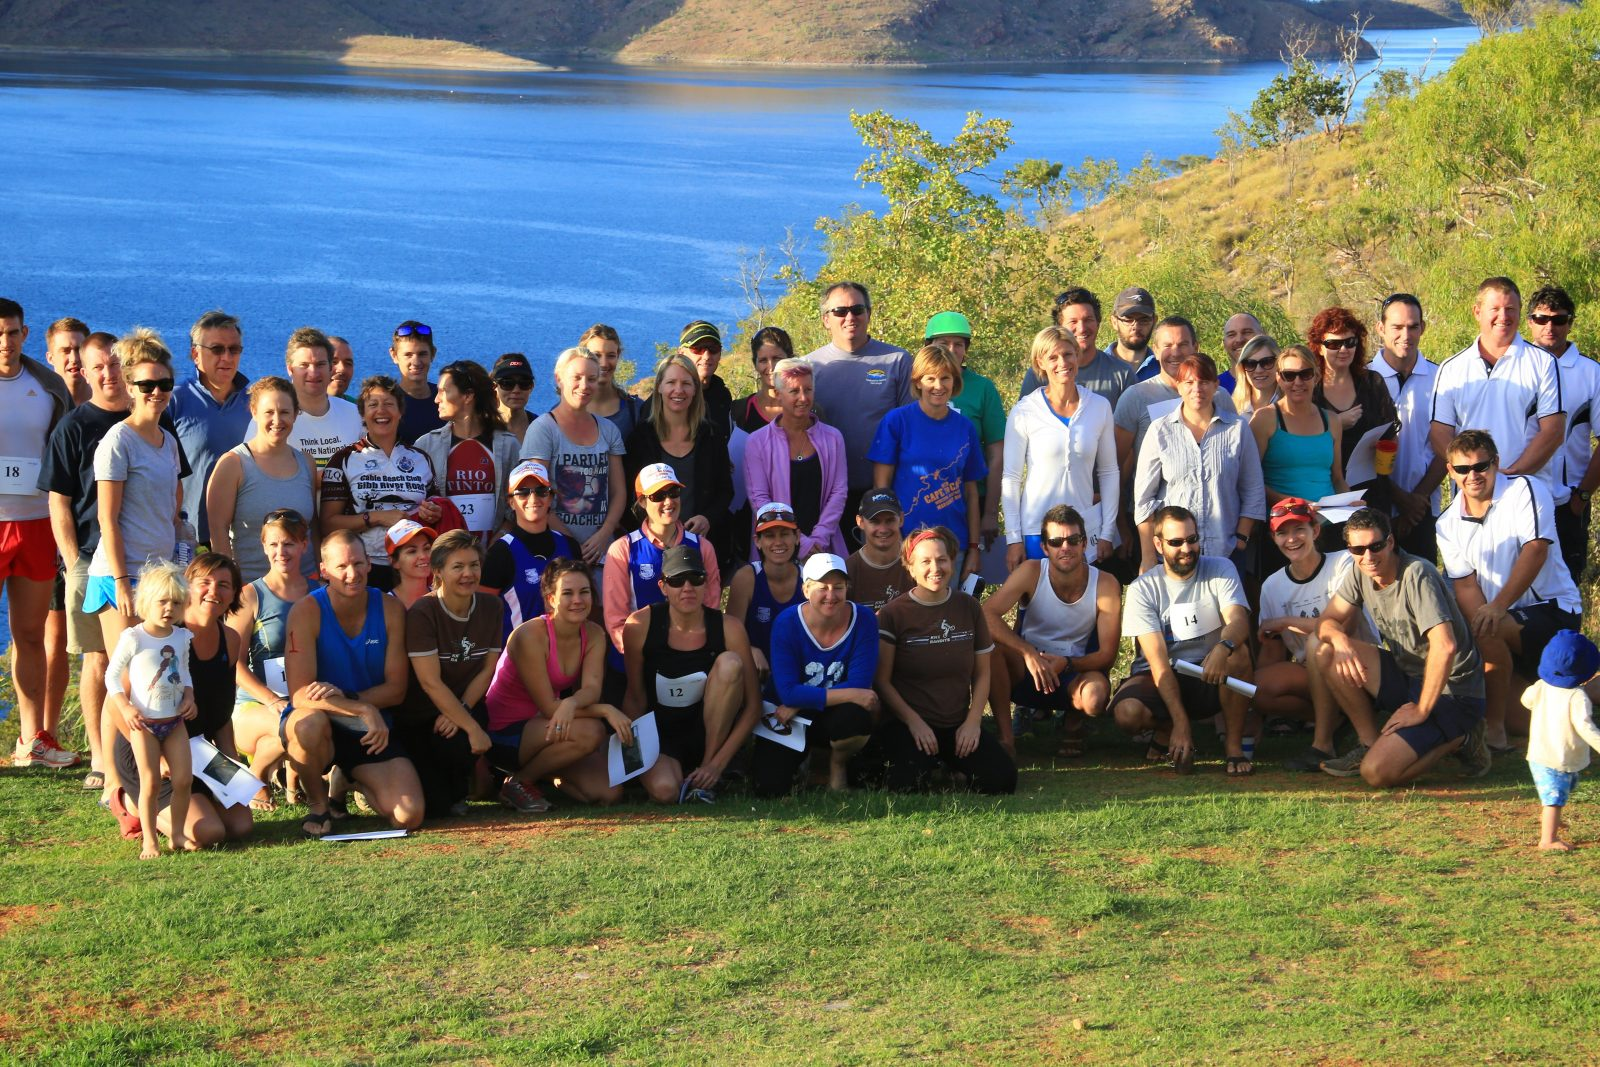 Lake Argyle Adventure Race, Lake Argyle, Western Australia